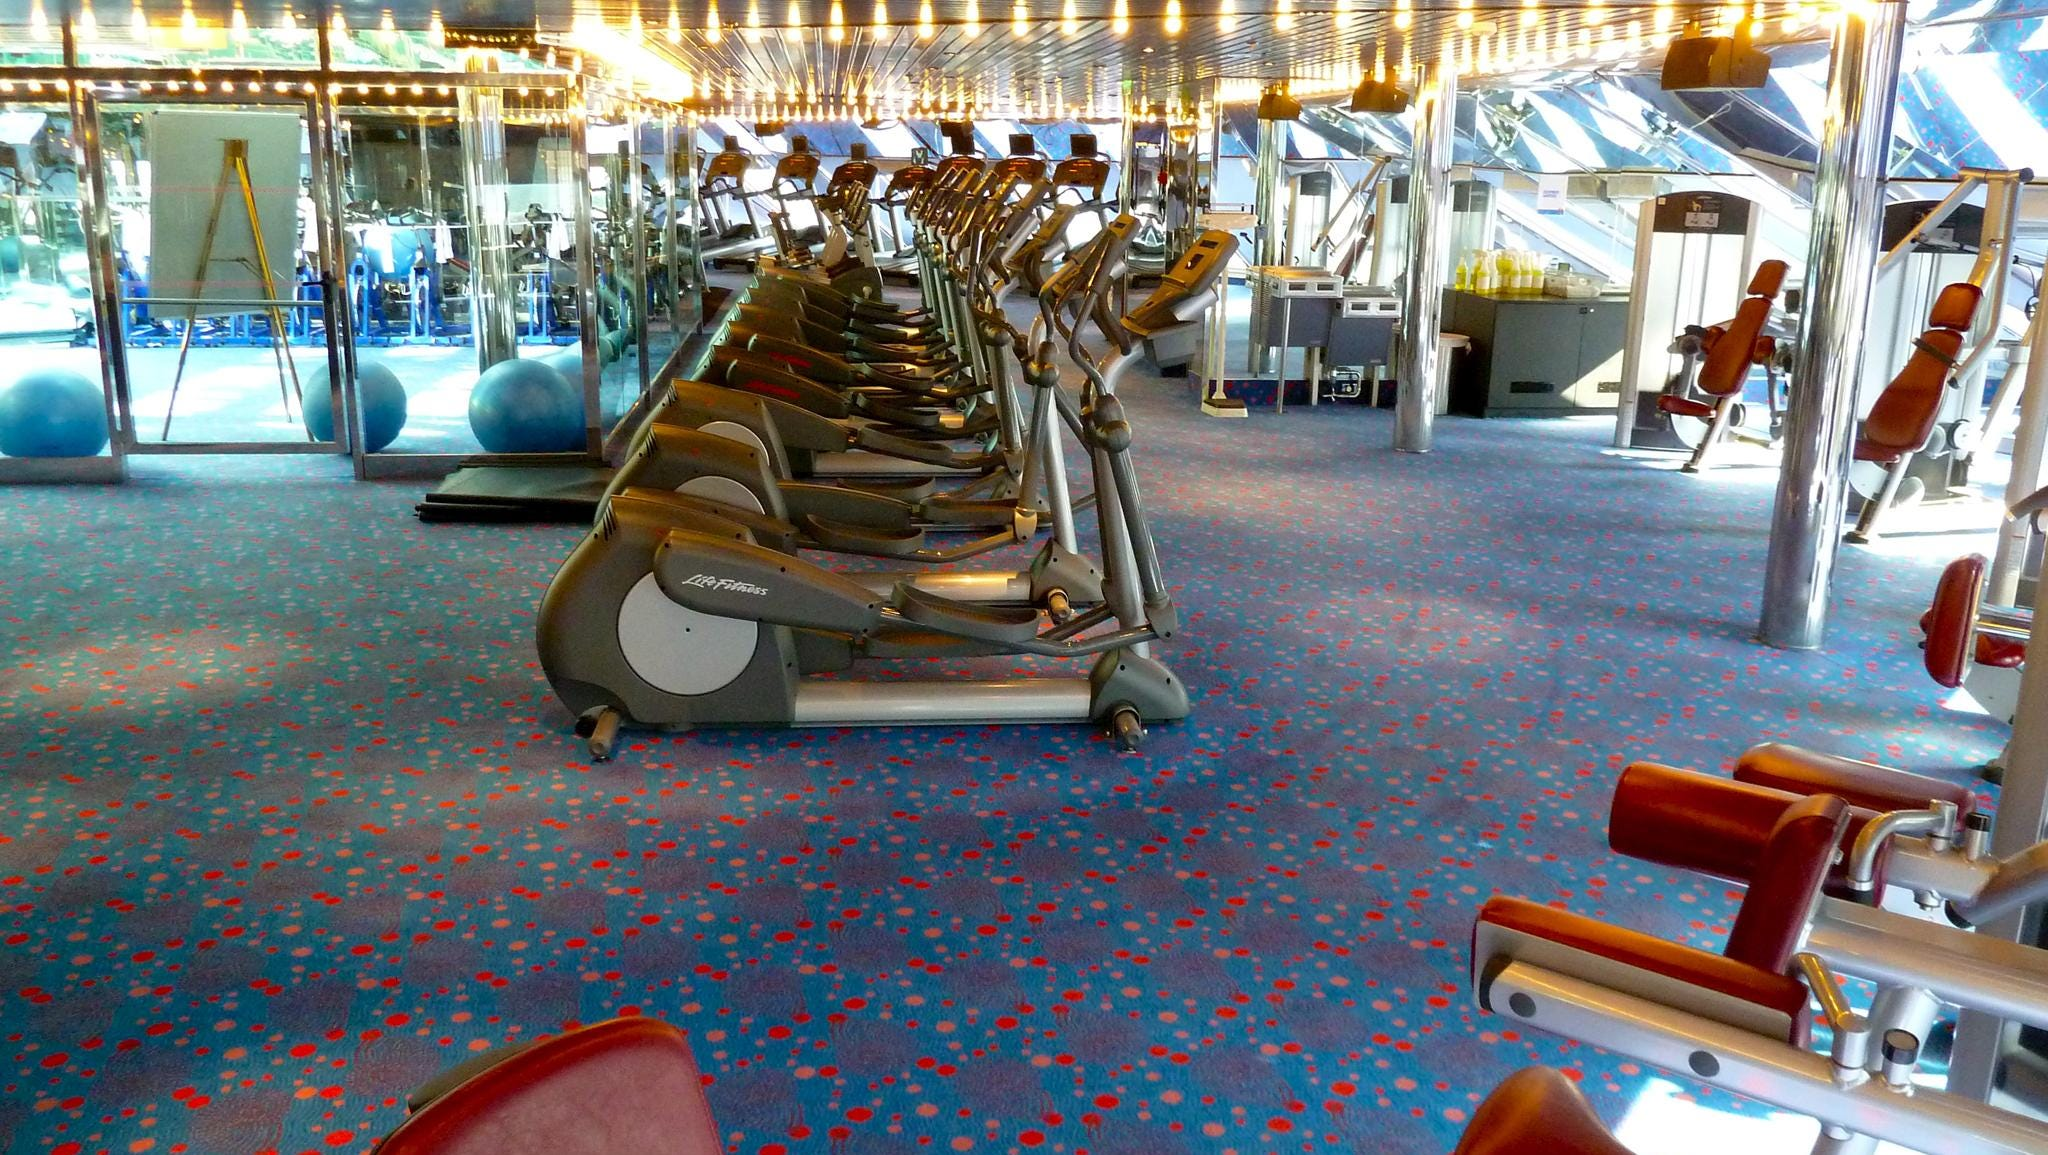 Equipped with an assortment of the latest cardio and weight machines, as well as free weights, the gym overlooks the bow from the forward portion of Deck 11.